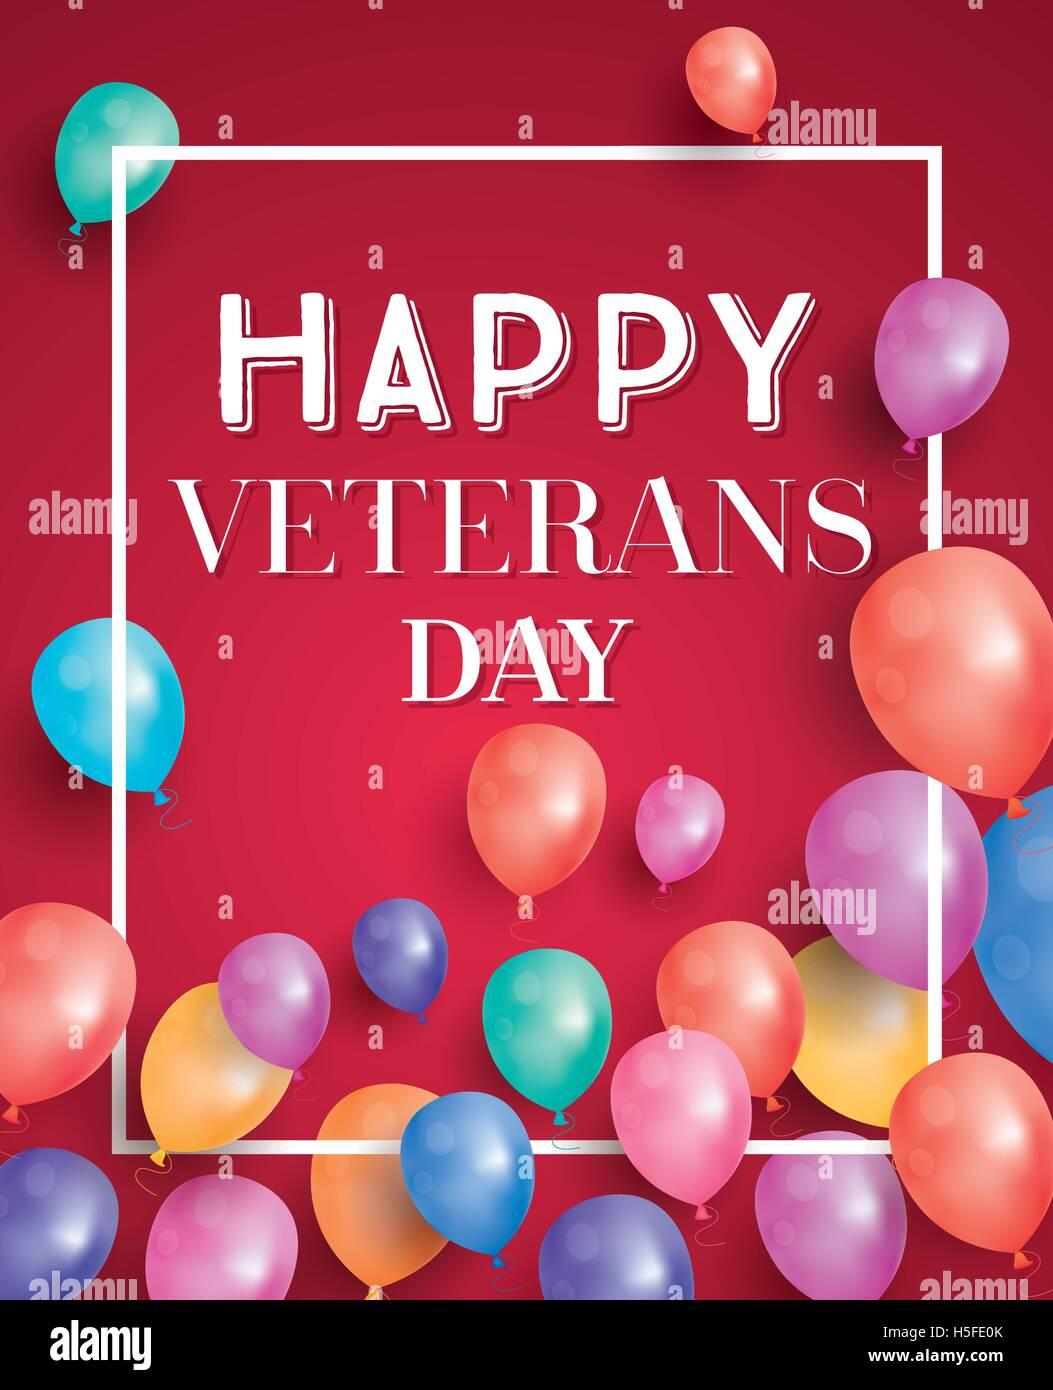 Happy veterans day greeting card with flying balloons vector stock happy veterans day greeting card with flying balloons vector illustration m4hsunfo Image collections